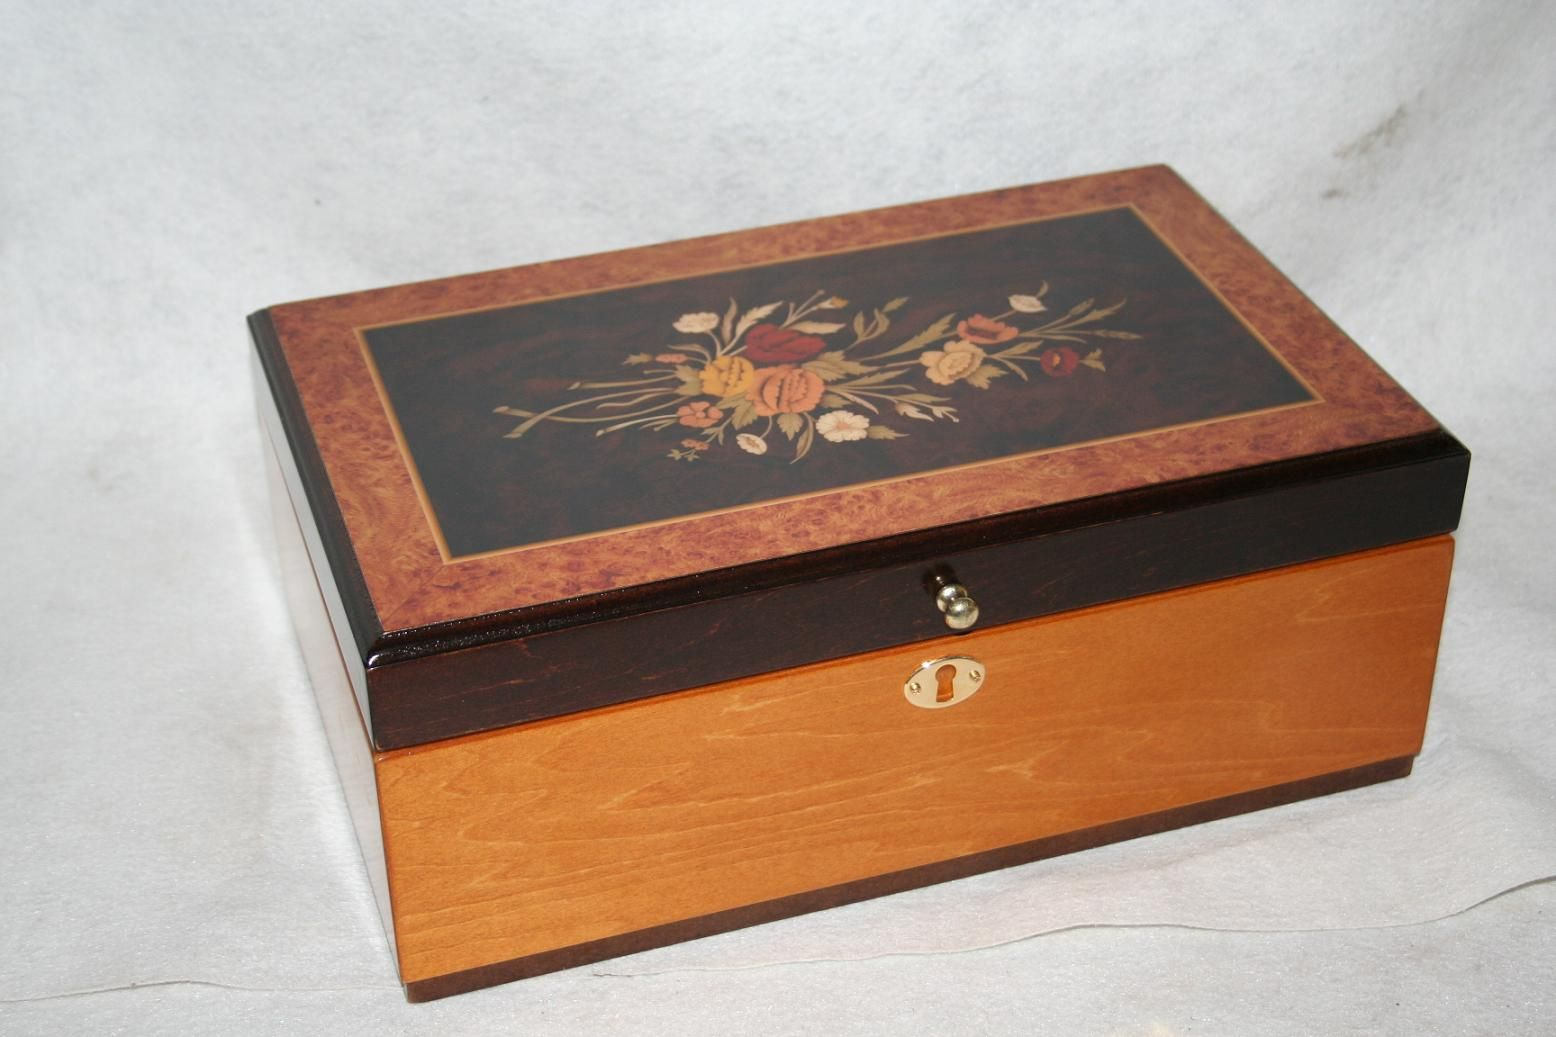 jewelry itm boxes decorative gift treasure small case about details decor chest wooden box home vintage